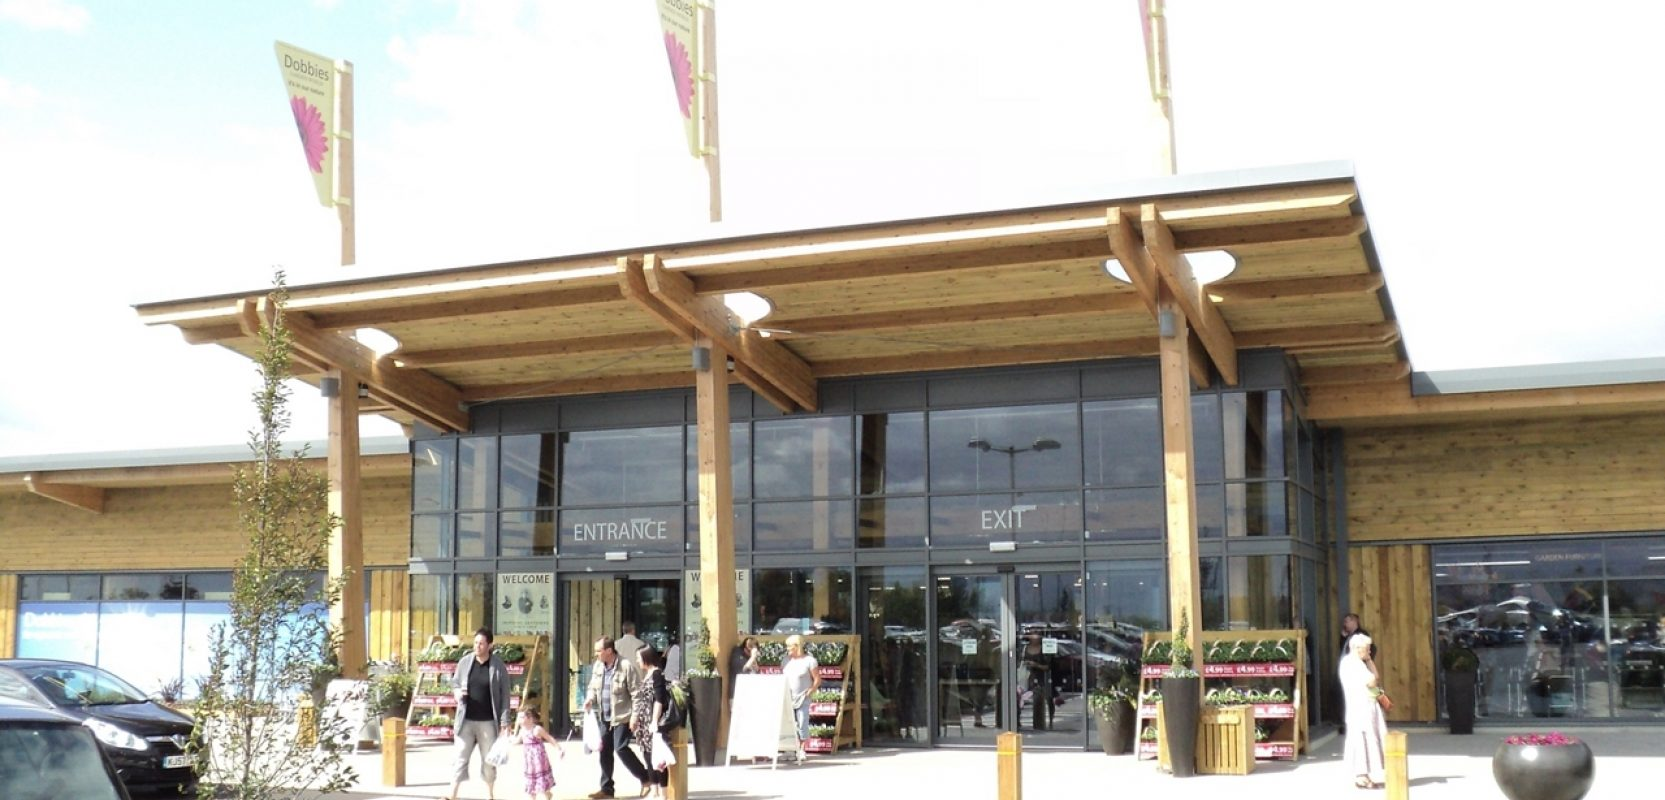 Images of Dobbies Garden Centres project